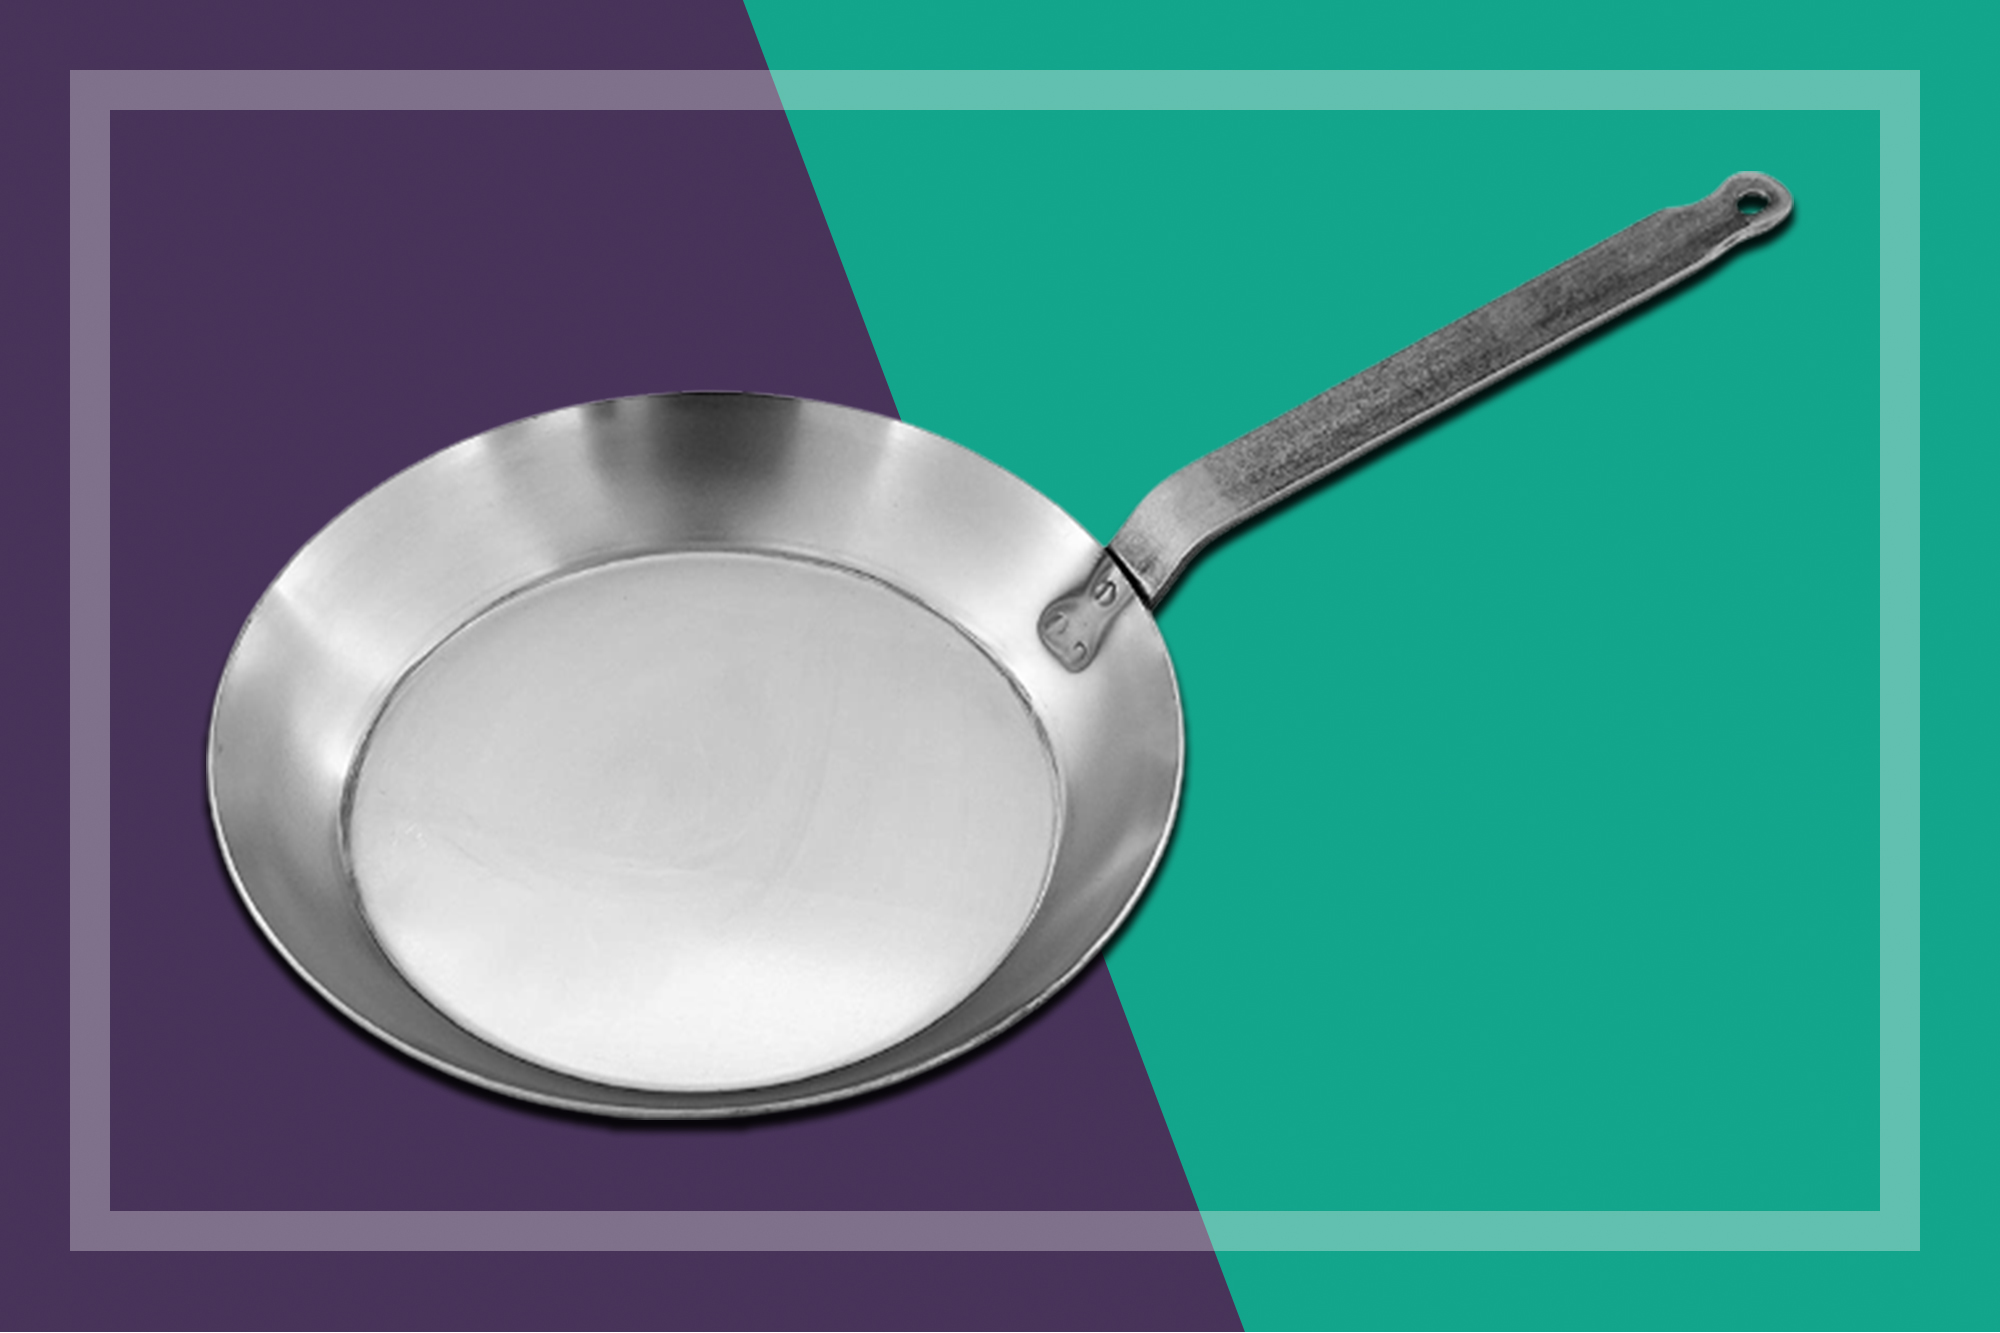 bourgeat carbon steel fry pan